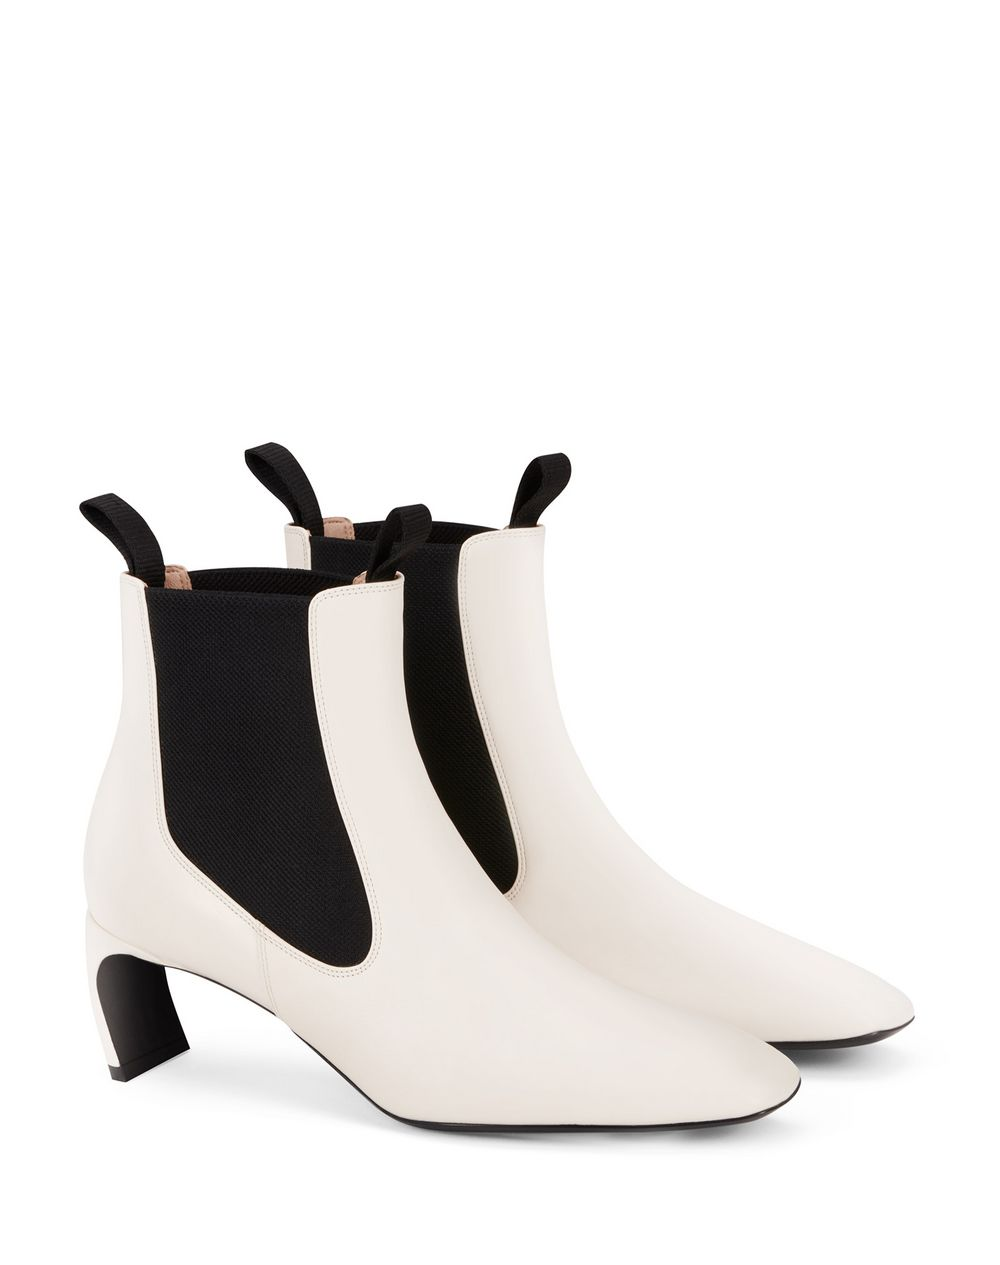 LEATHER J ANKLE BOOTS - Lanvin